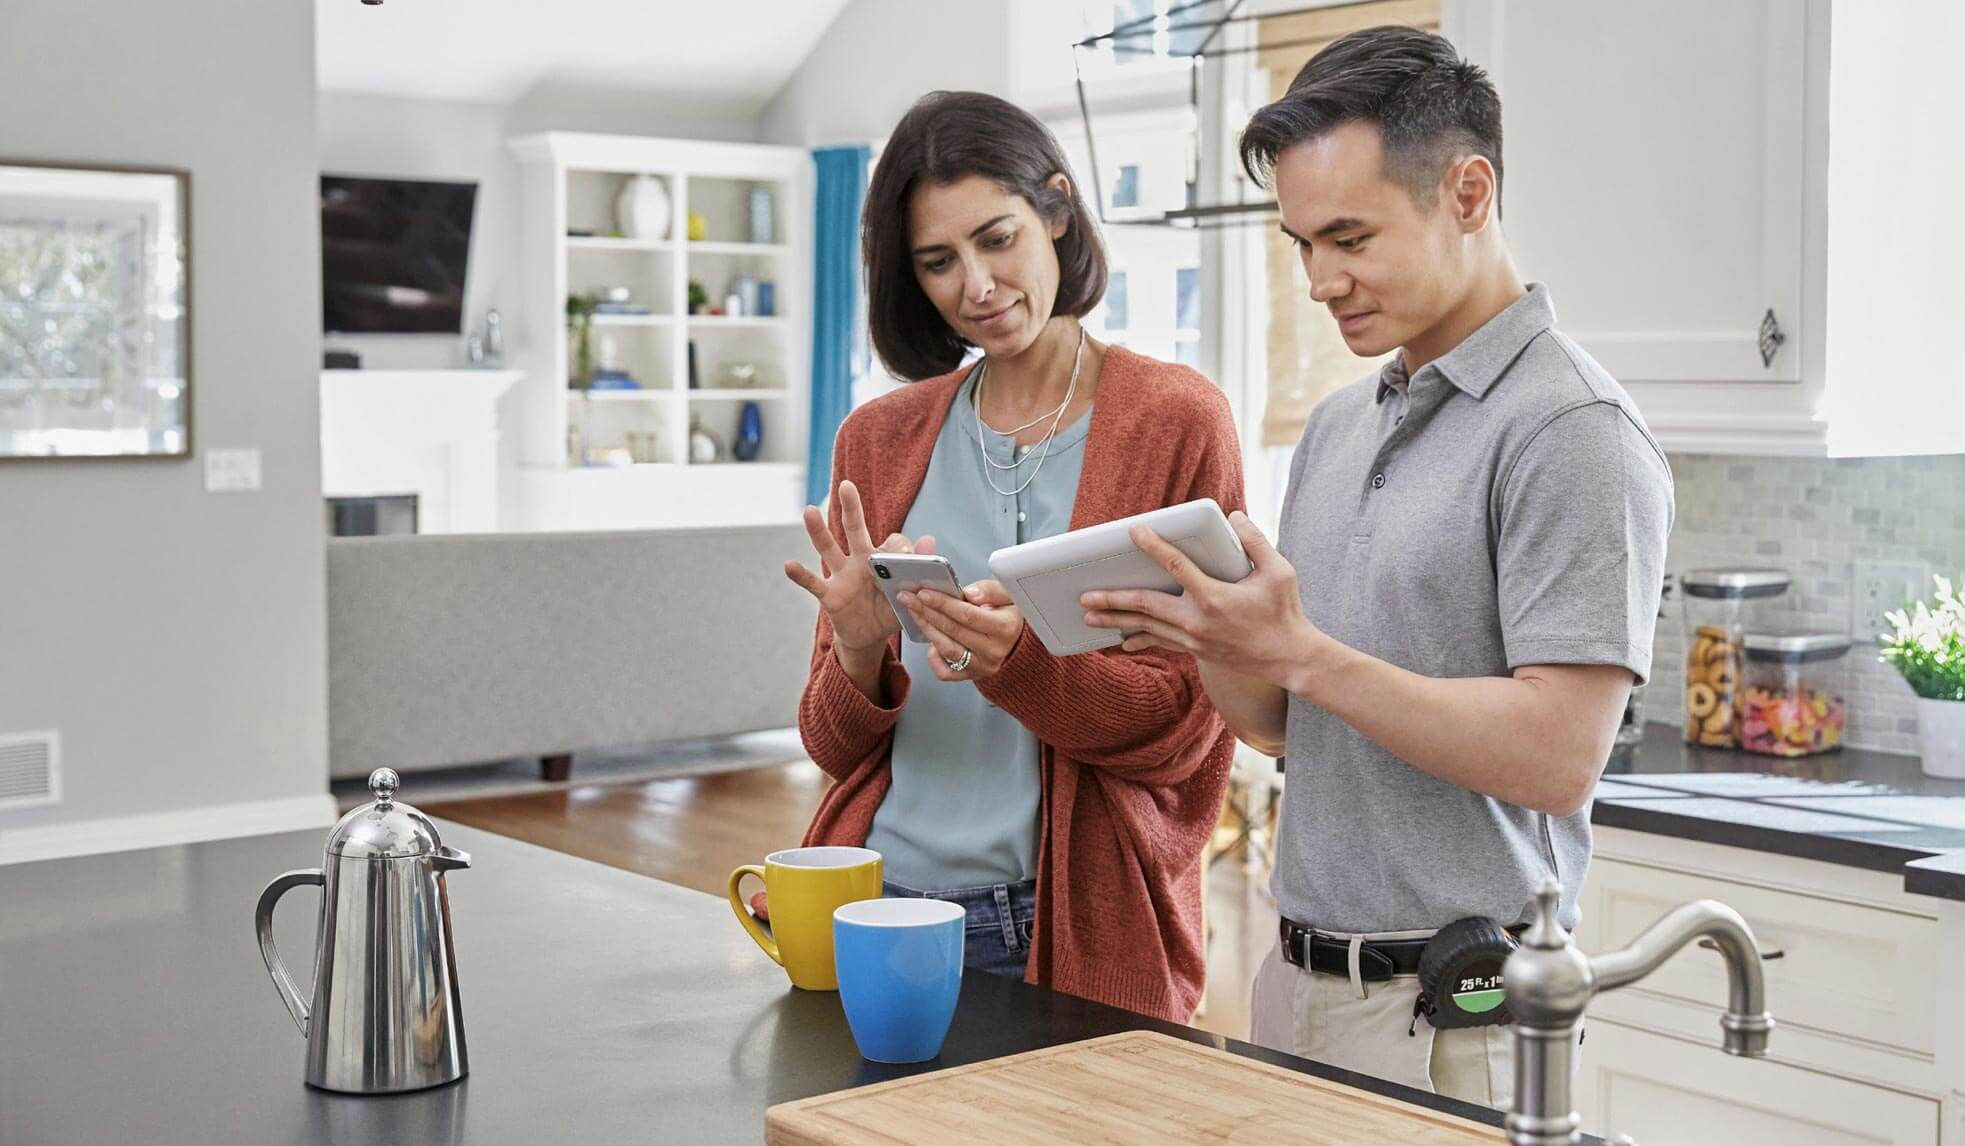 Helping customers connect the indoor air system together with RedLINK® technology